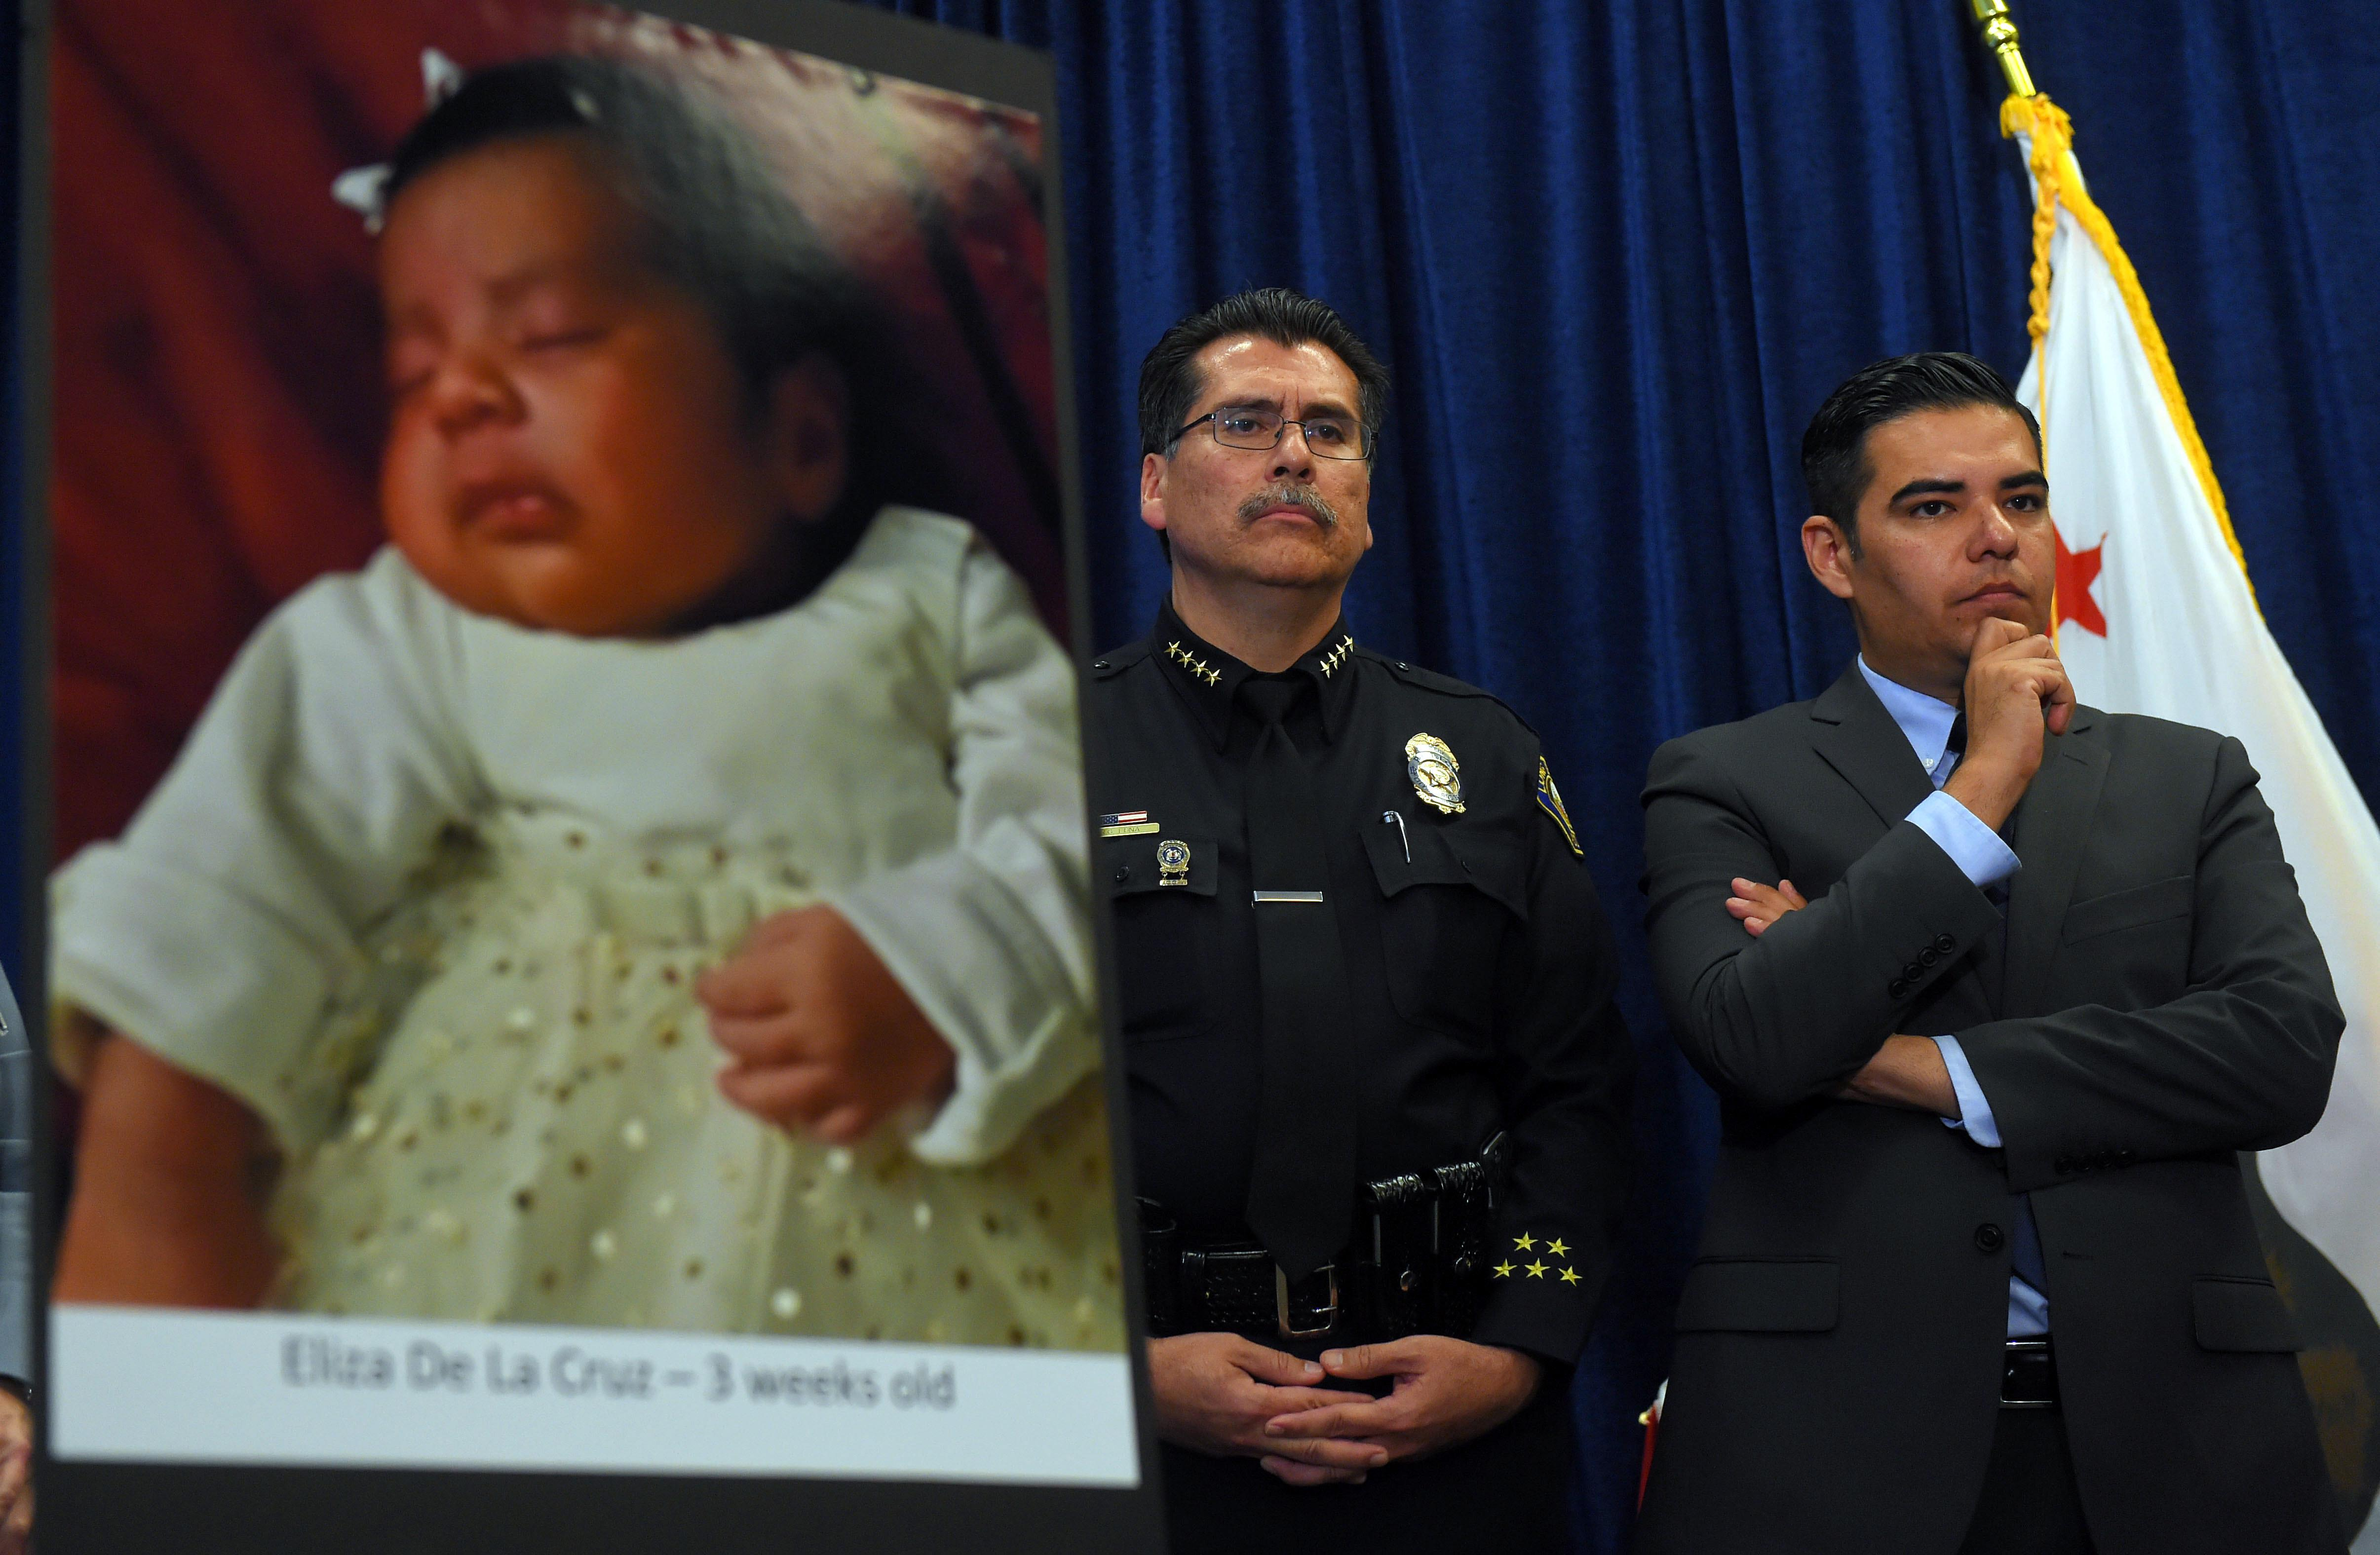 California woman, friend charged in alleged baby-theft plot